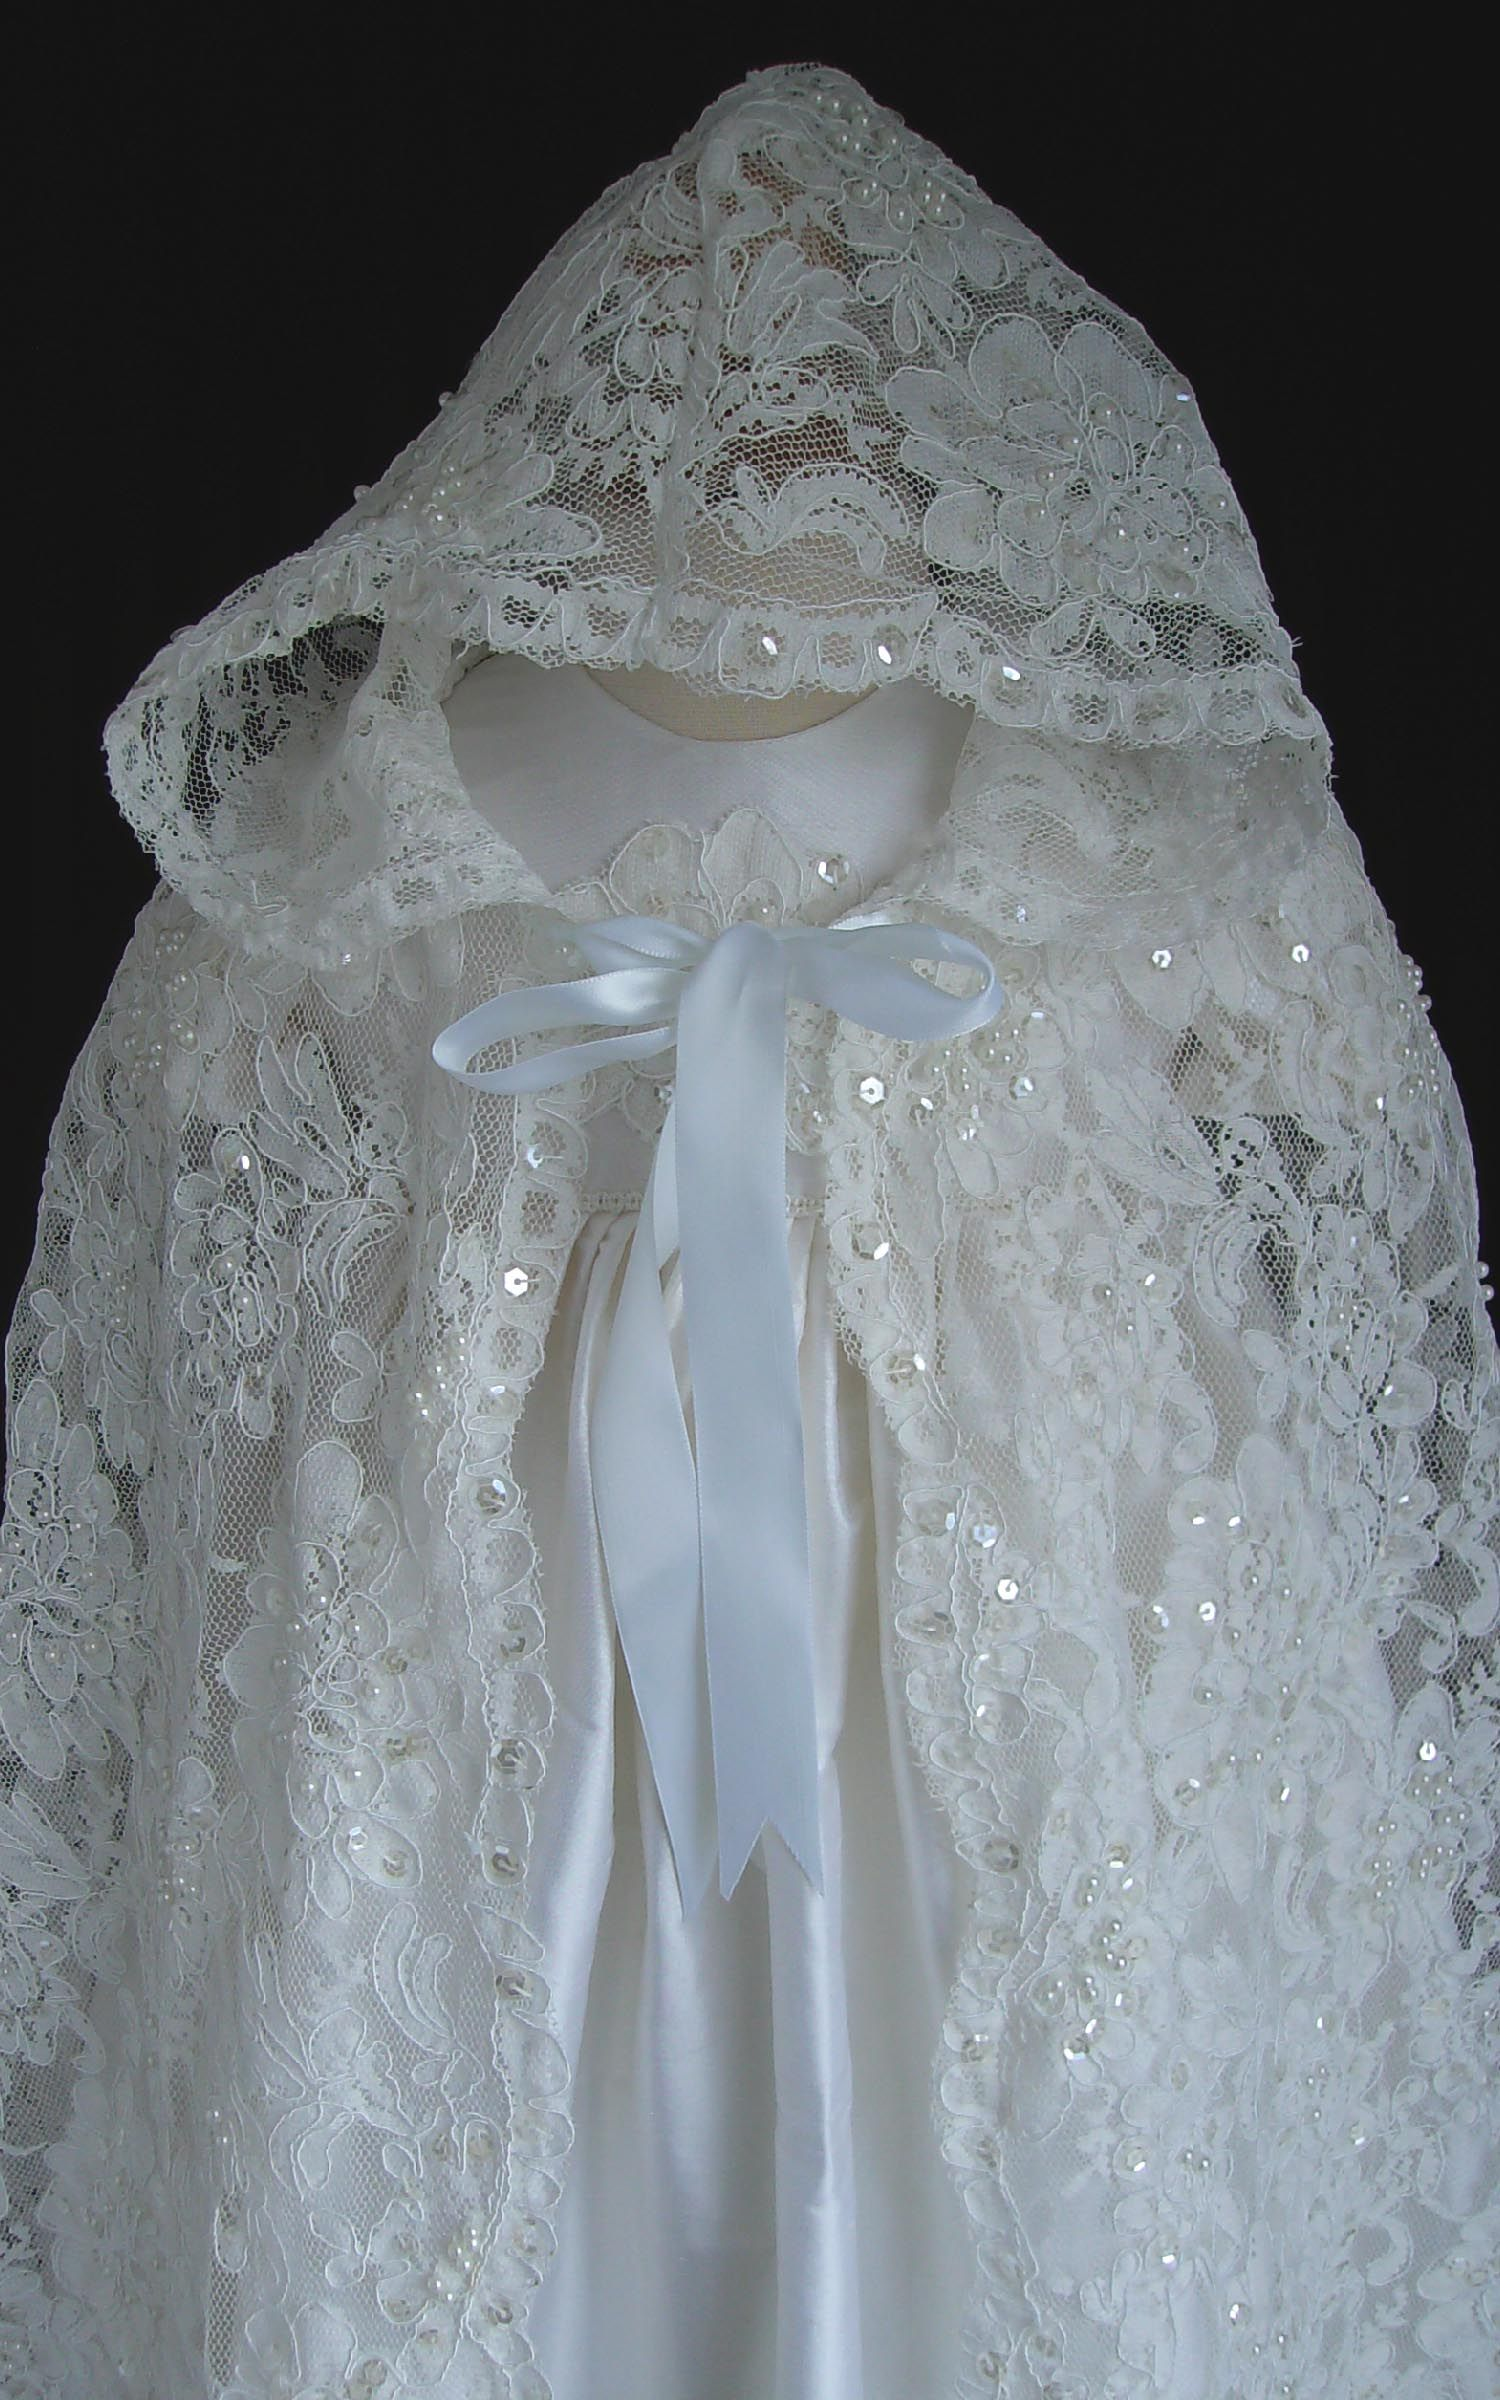 An elegant white dupioni silk christening gown of royal length with